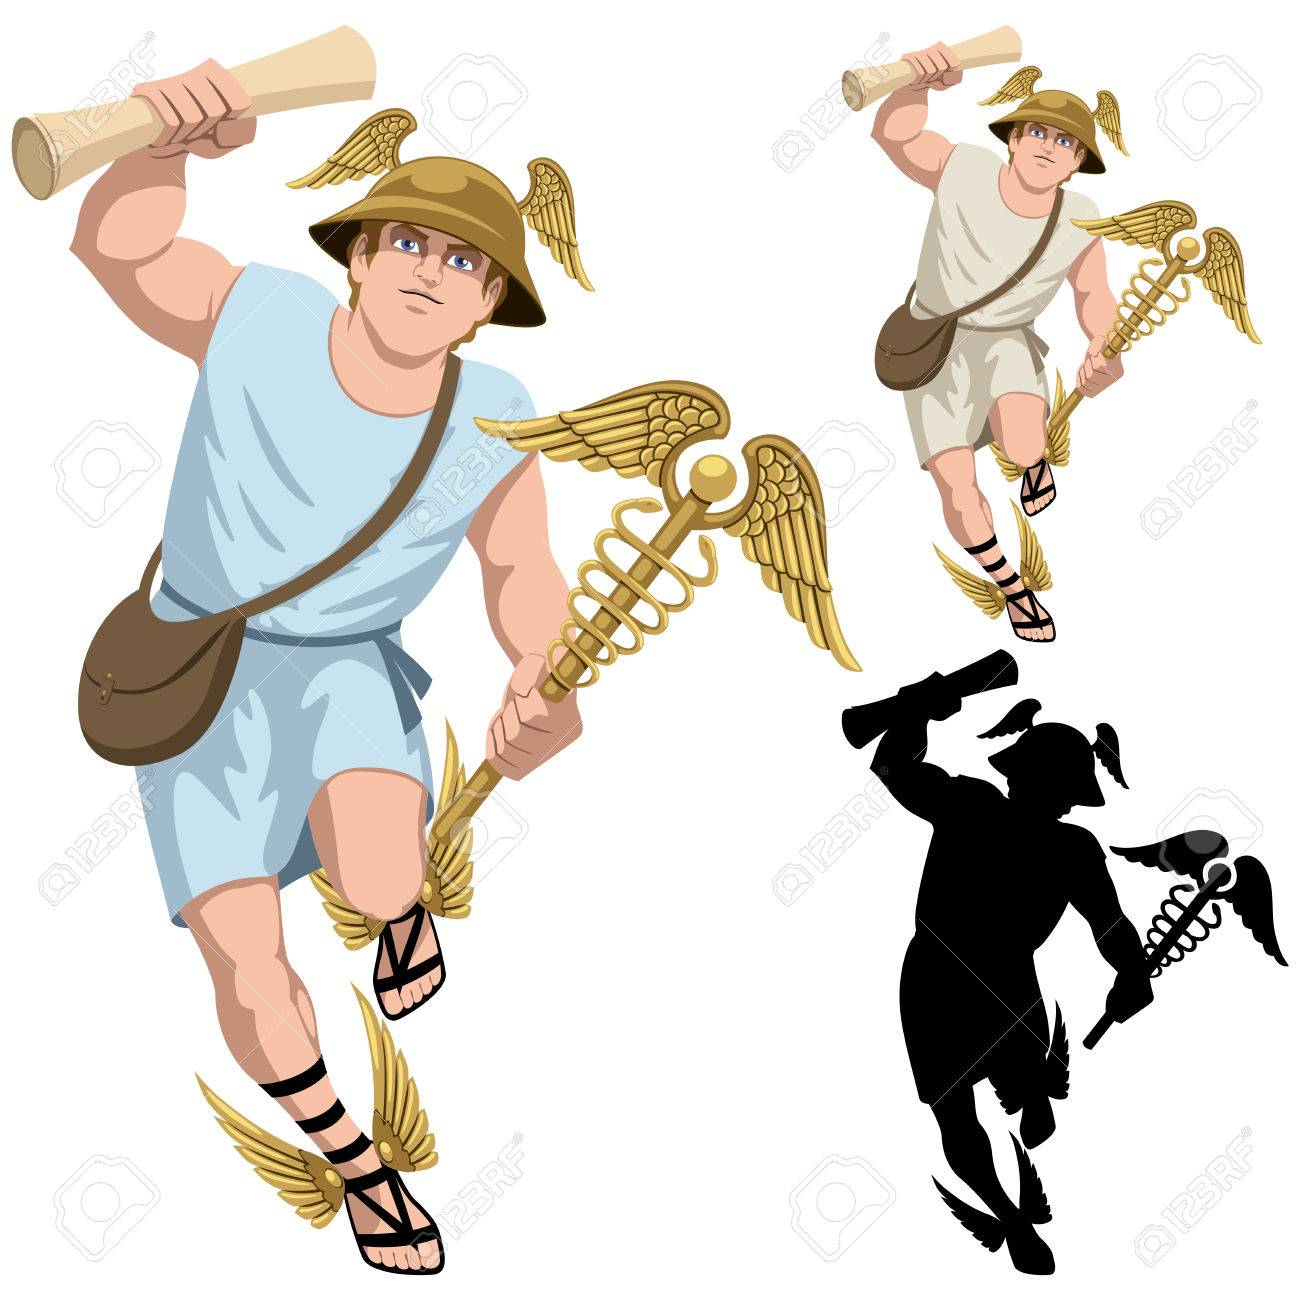 greek god hermes isolated on white and in 3 versions royalty free